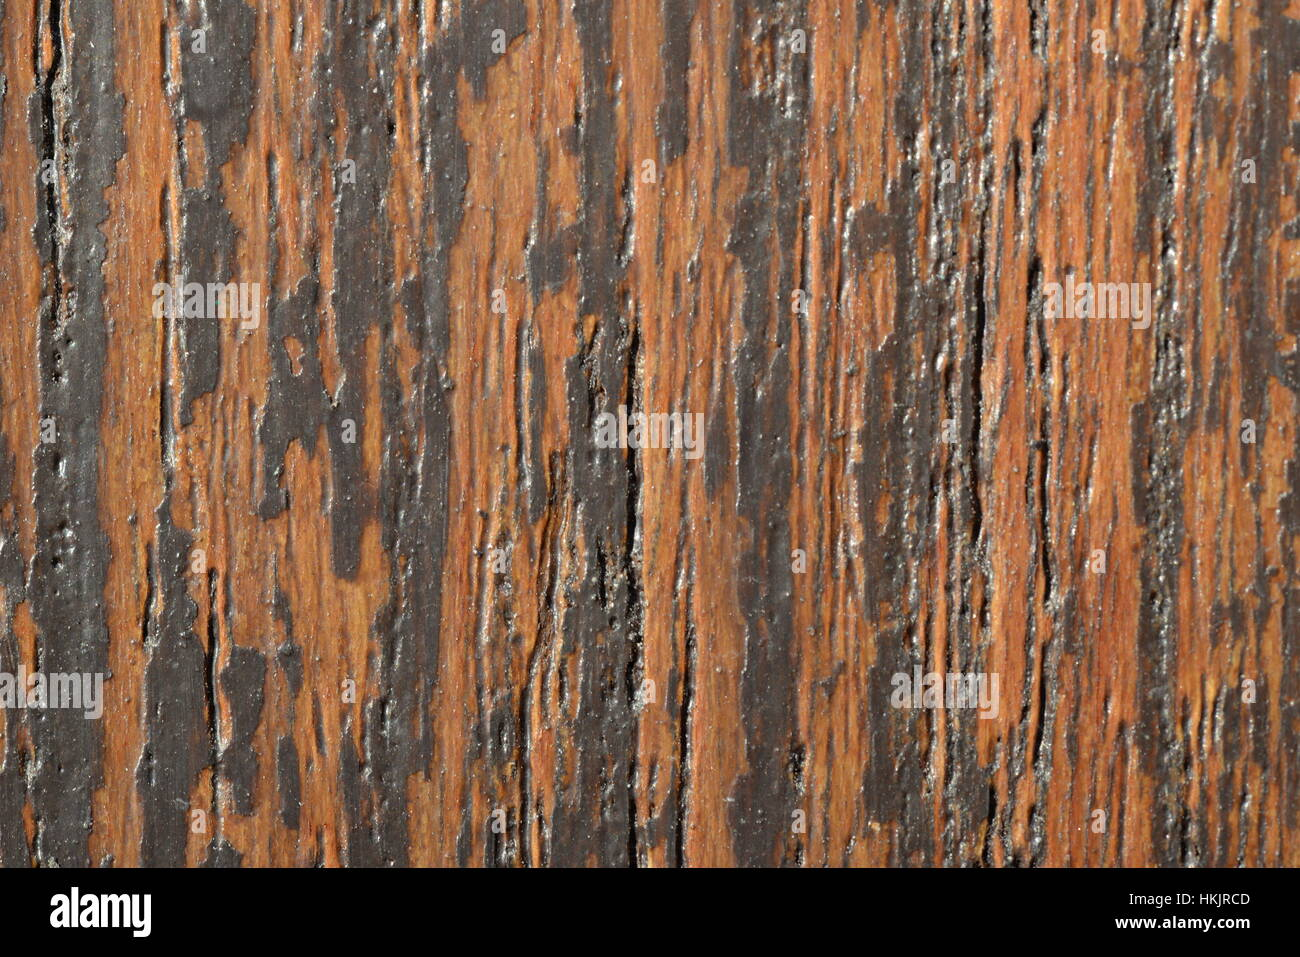 Close up of wooden texture - Stock Image